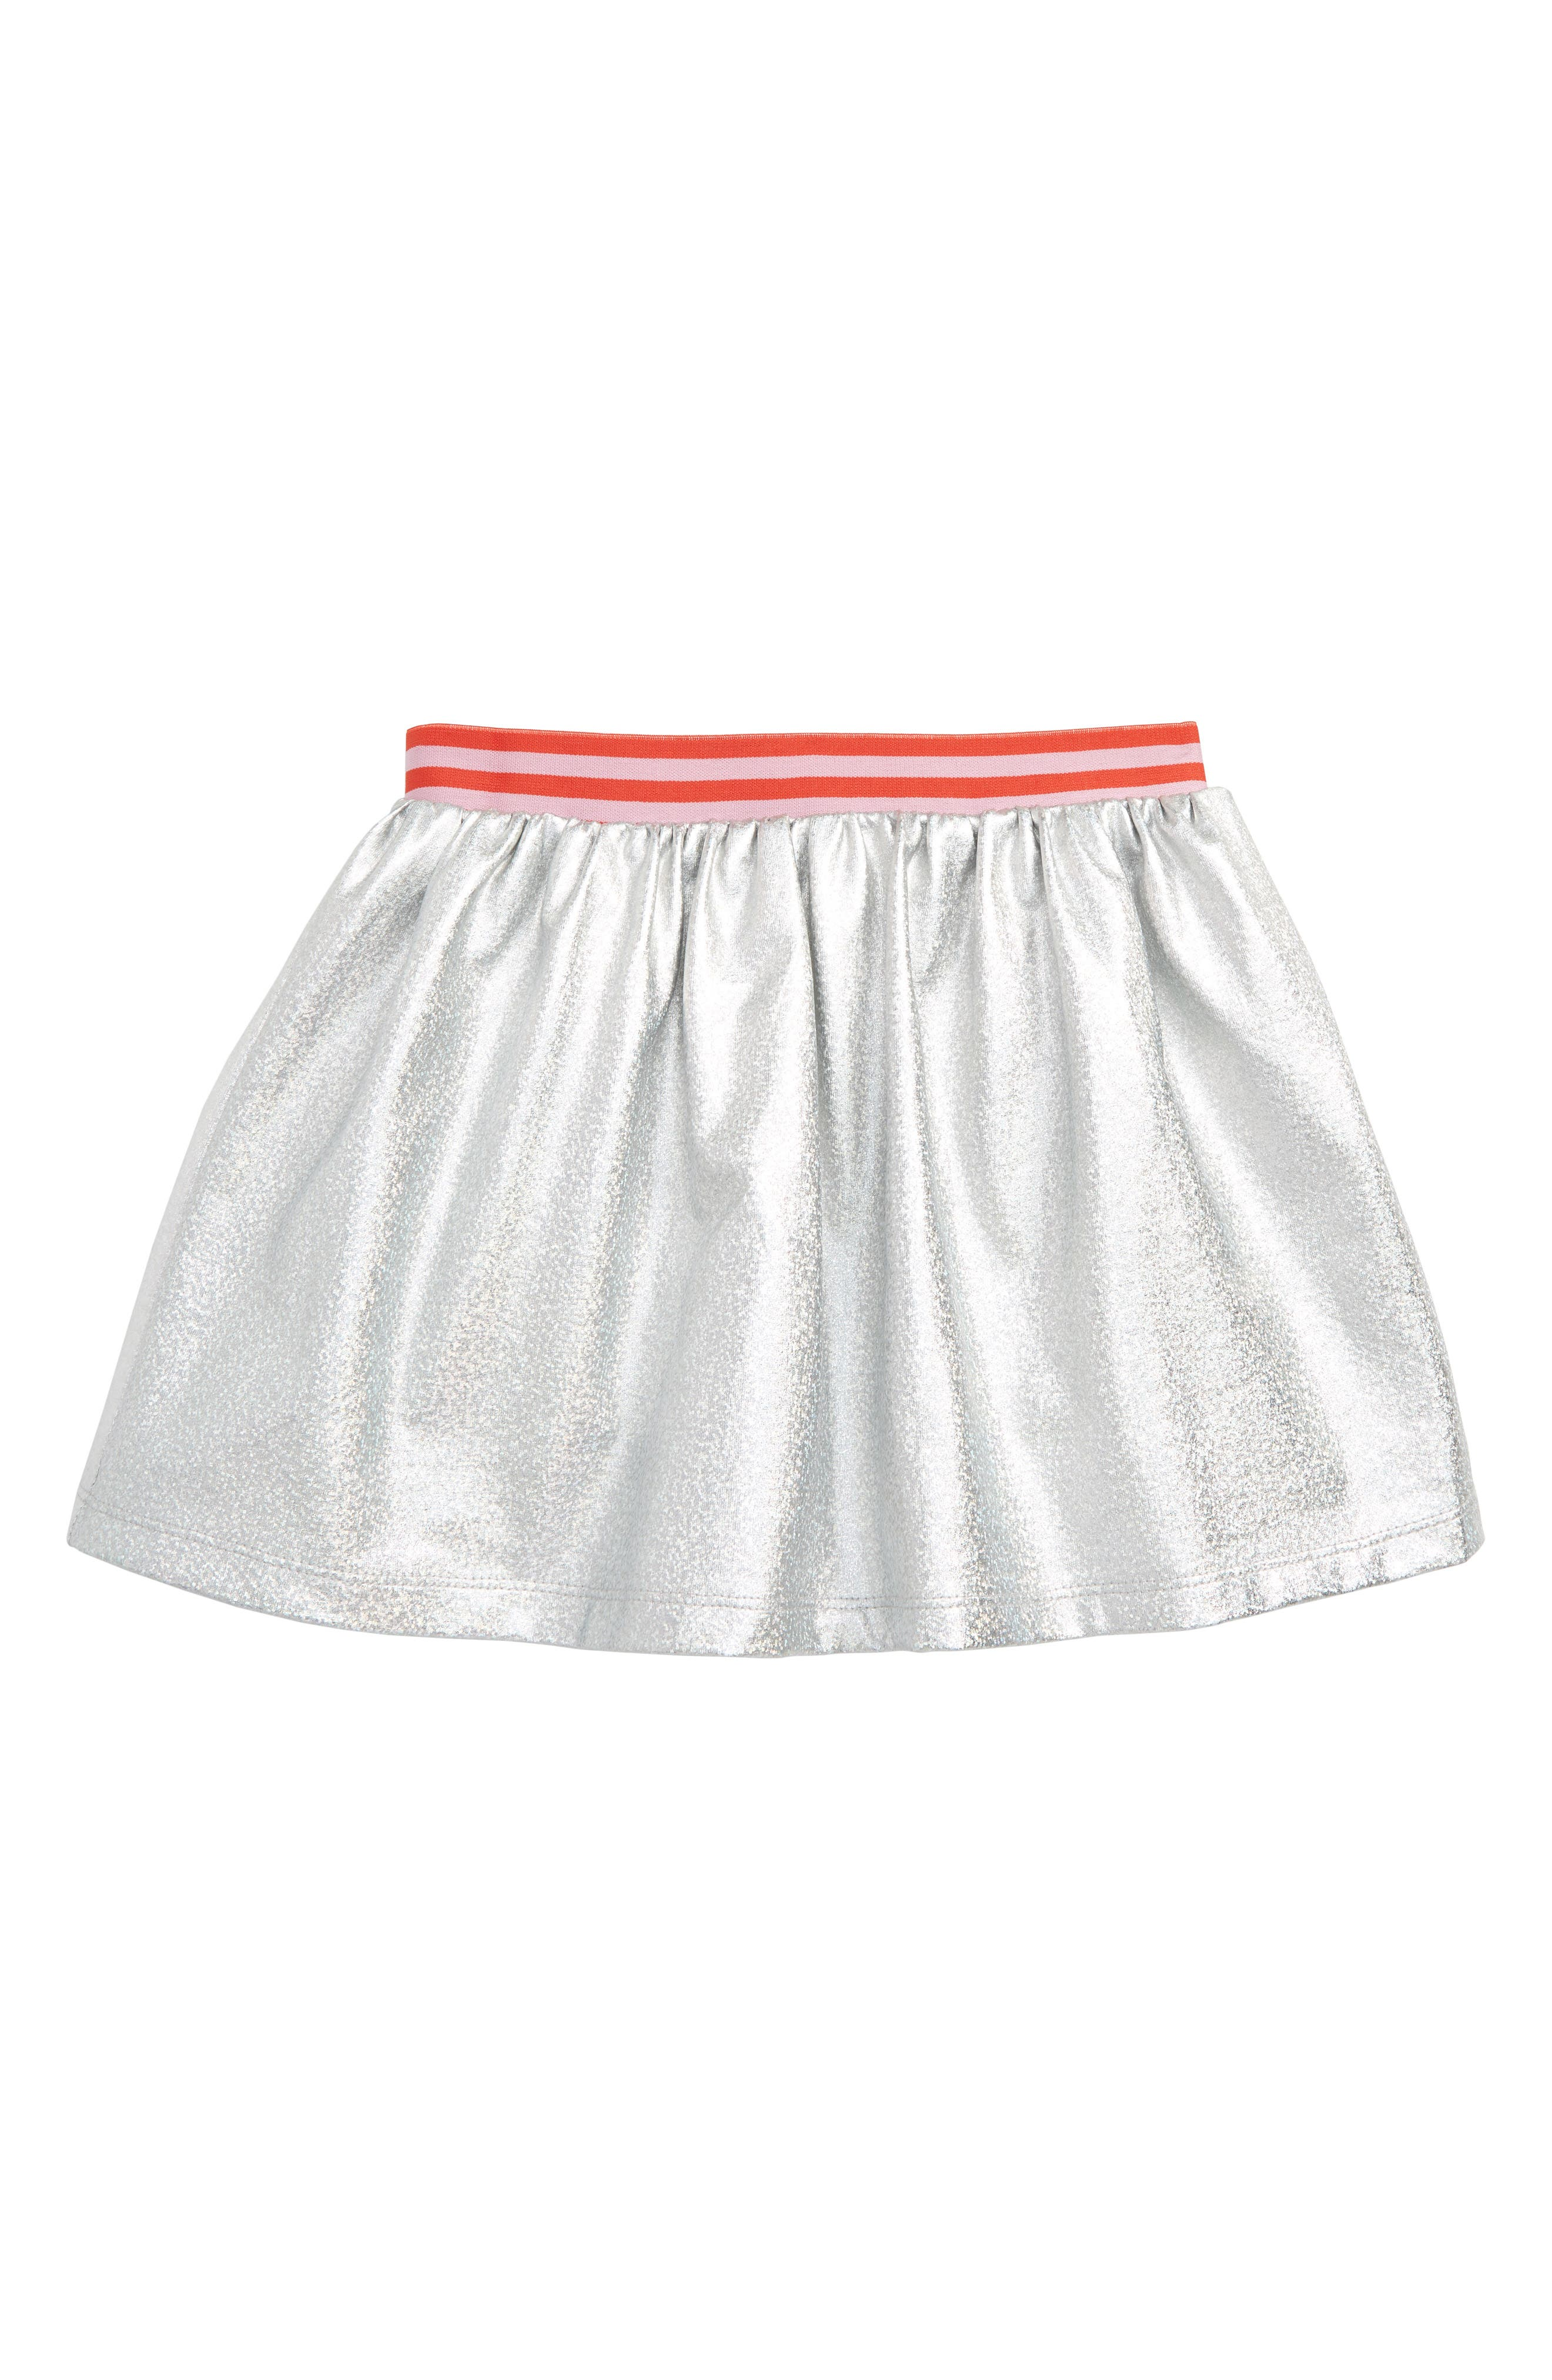 ,                             Boden Metallic Skirt,                             Main thumbnail 1, color,                             SLV IRIDESCENT SILVER